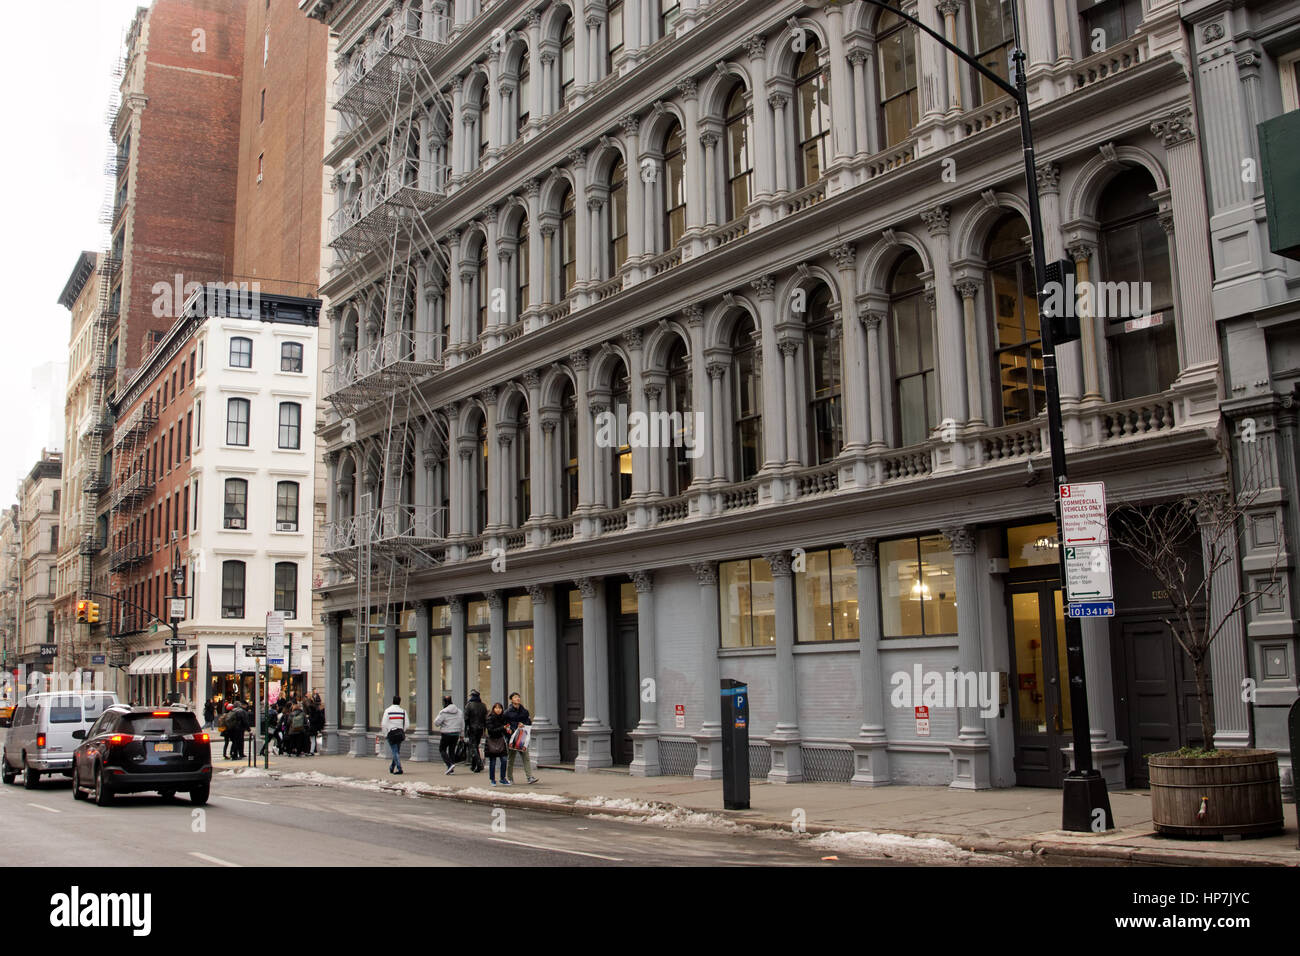 The landmarked E.V. Haughwout Building at the corner of Broome Street and Broadway in Manhattan dates from 1857. - Stock Image